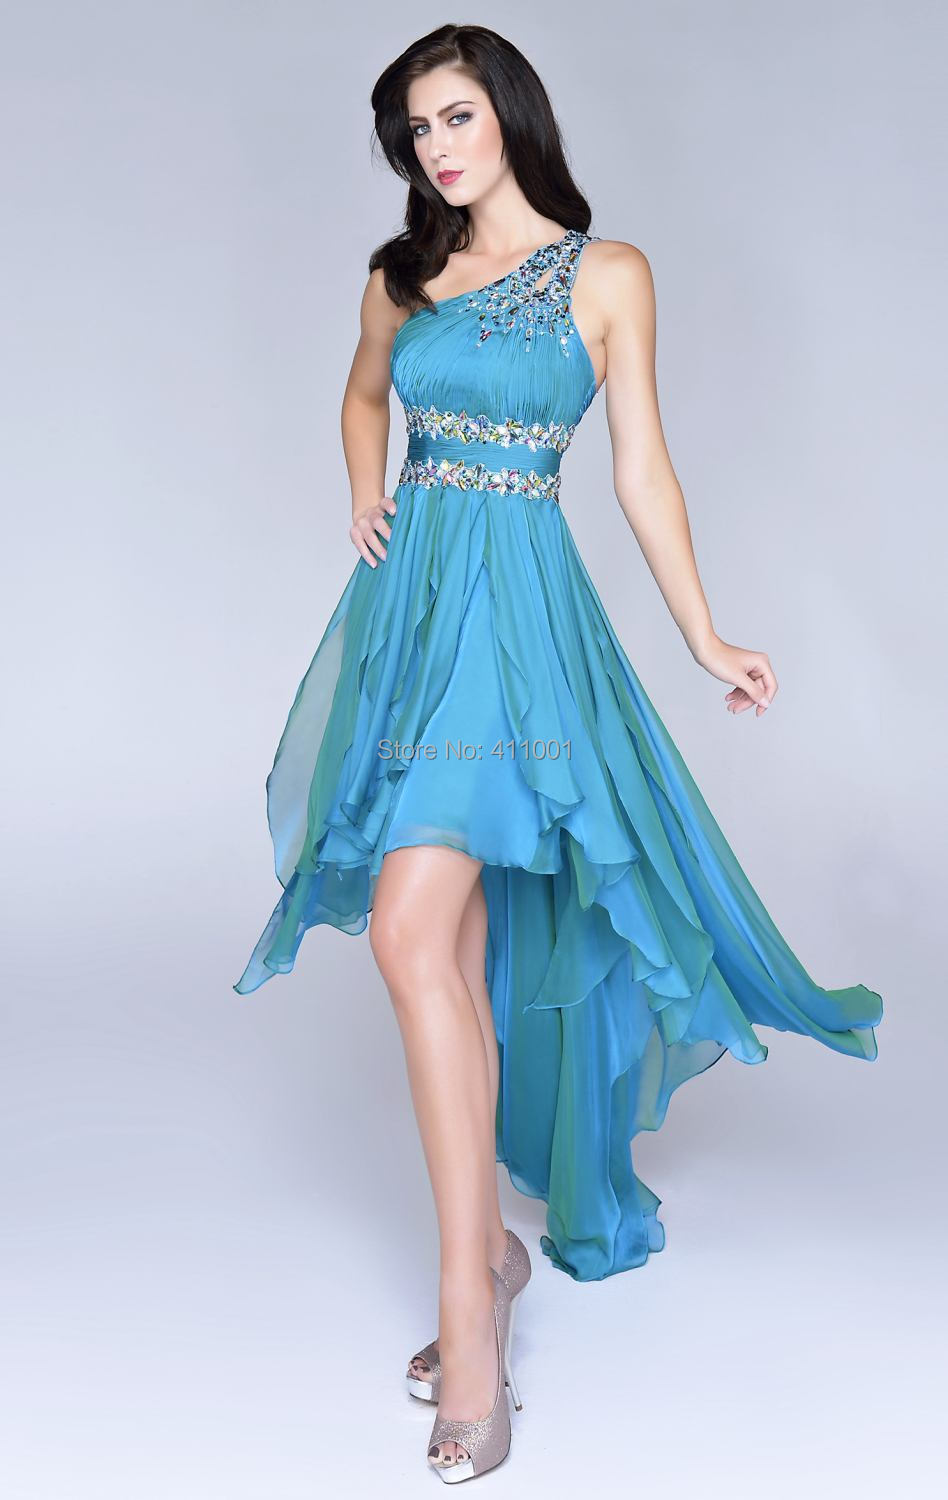 Teal One Shoulder Chiffon Beaded HI LO Cocktail Dress Party Bridal Gown ALL Sizes In Cocktail